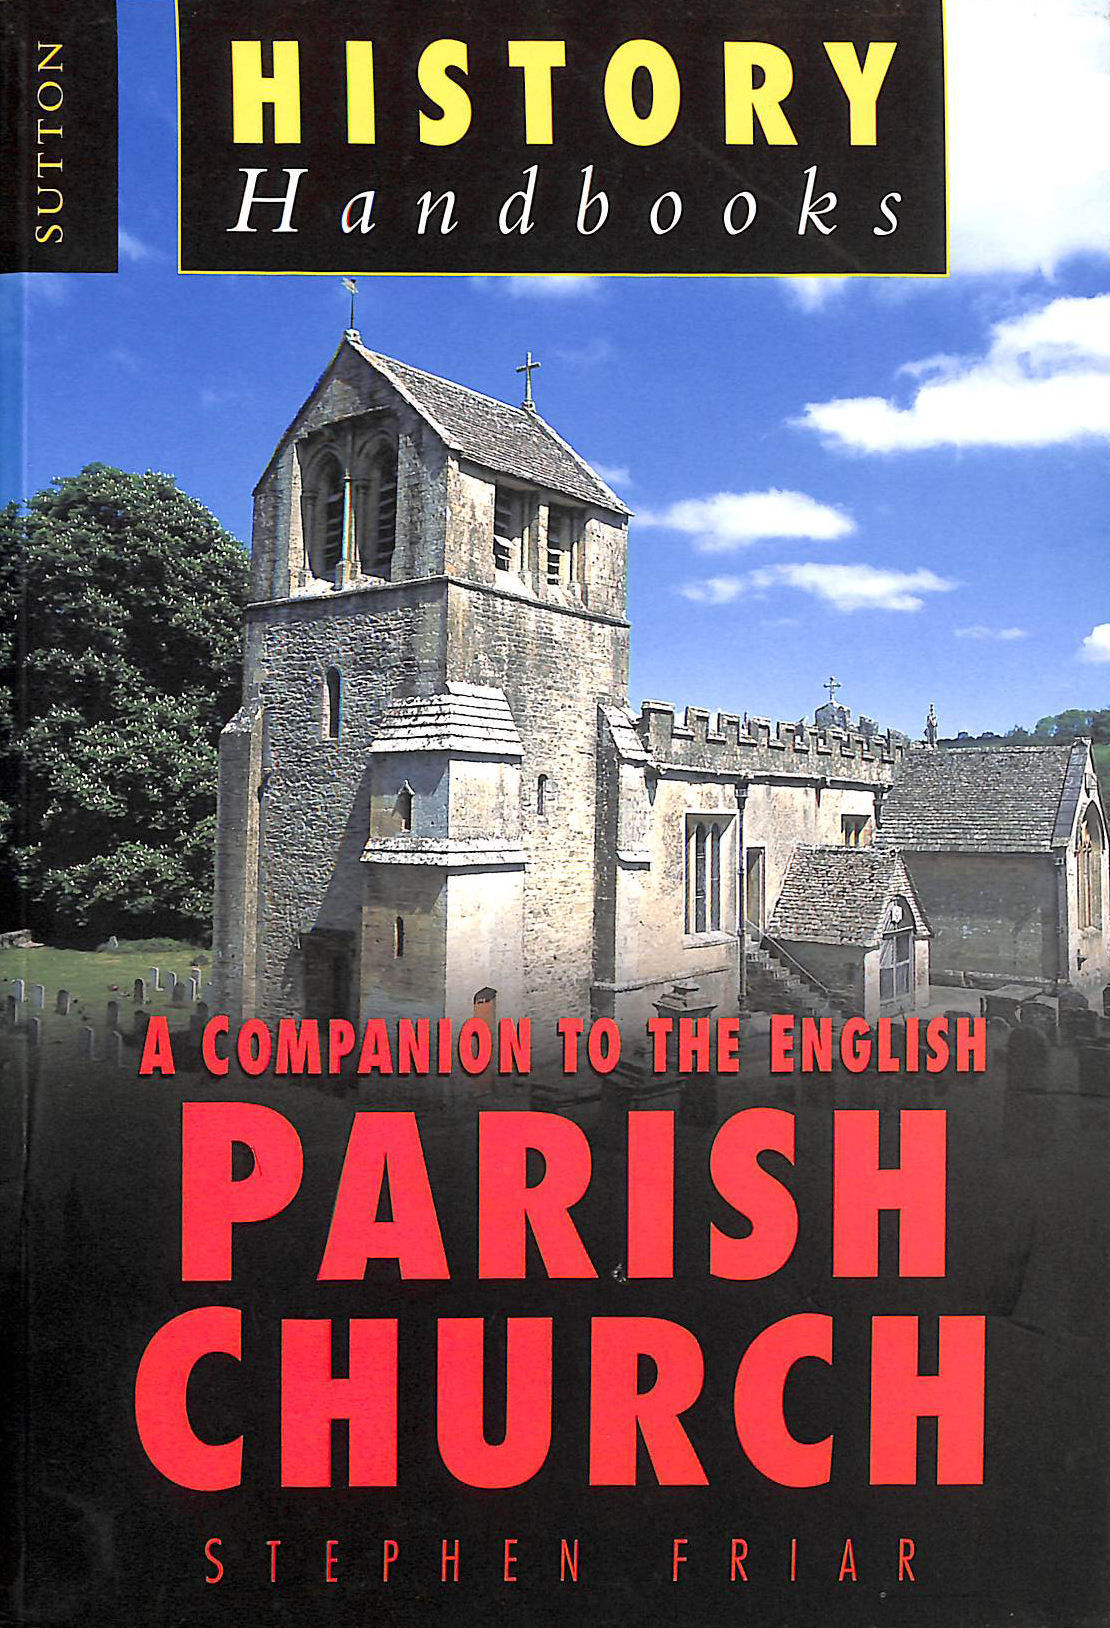 Image for A Companion To The English Parish Church (Sutton History Handbooks)